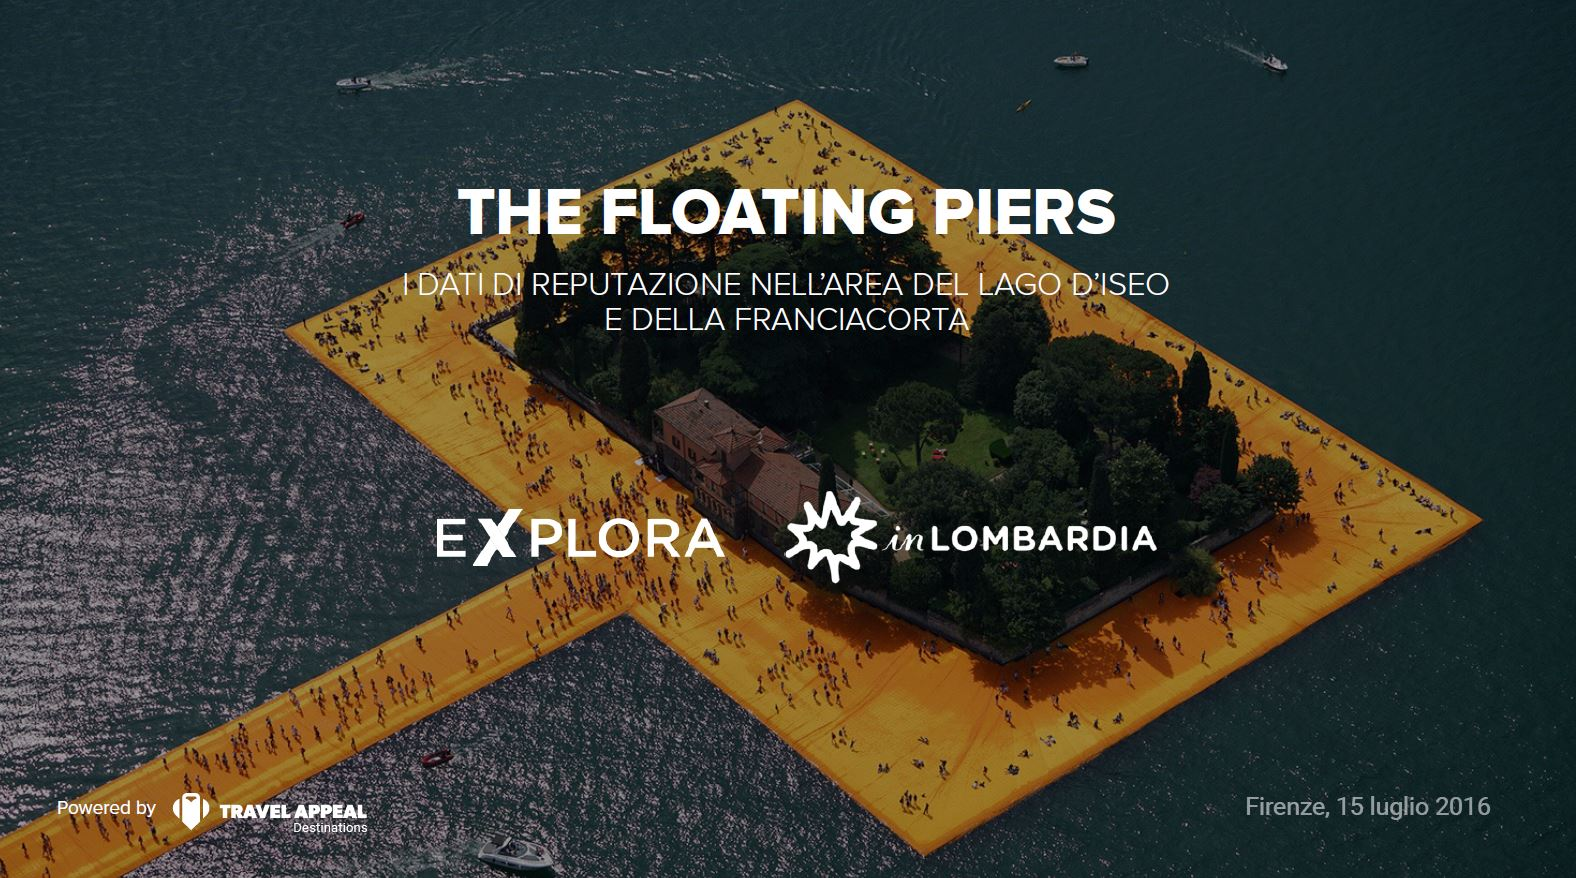 inLOMBARDIA tramite Travel Appeal comunica i dati social di The Floating Piers